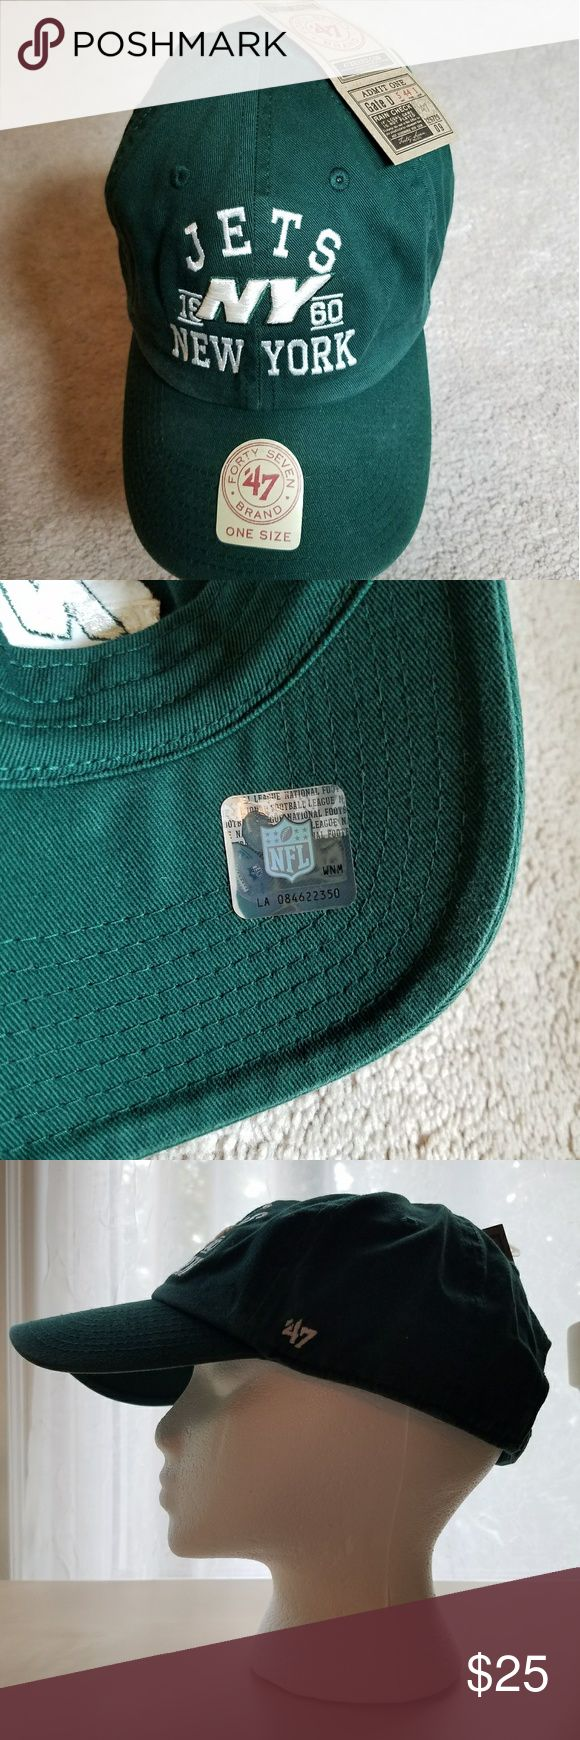 Jets NFL Official Hat This Jets official NFL hat is brand new and includes all tags and authenticating stickers. The unisex cap comes in an adult standard one size featuring an adjustable strap that will look great on any sports fan. Keep the sun out of your eyes and your head protected in official football gear! Accessories Hats